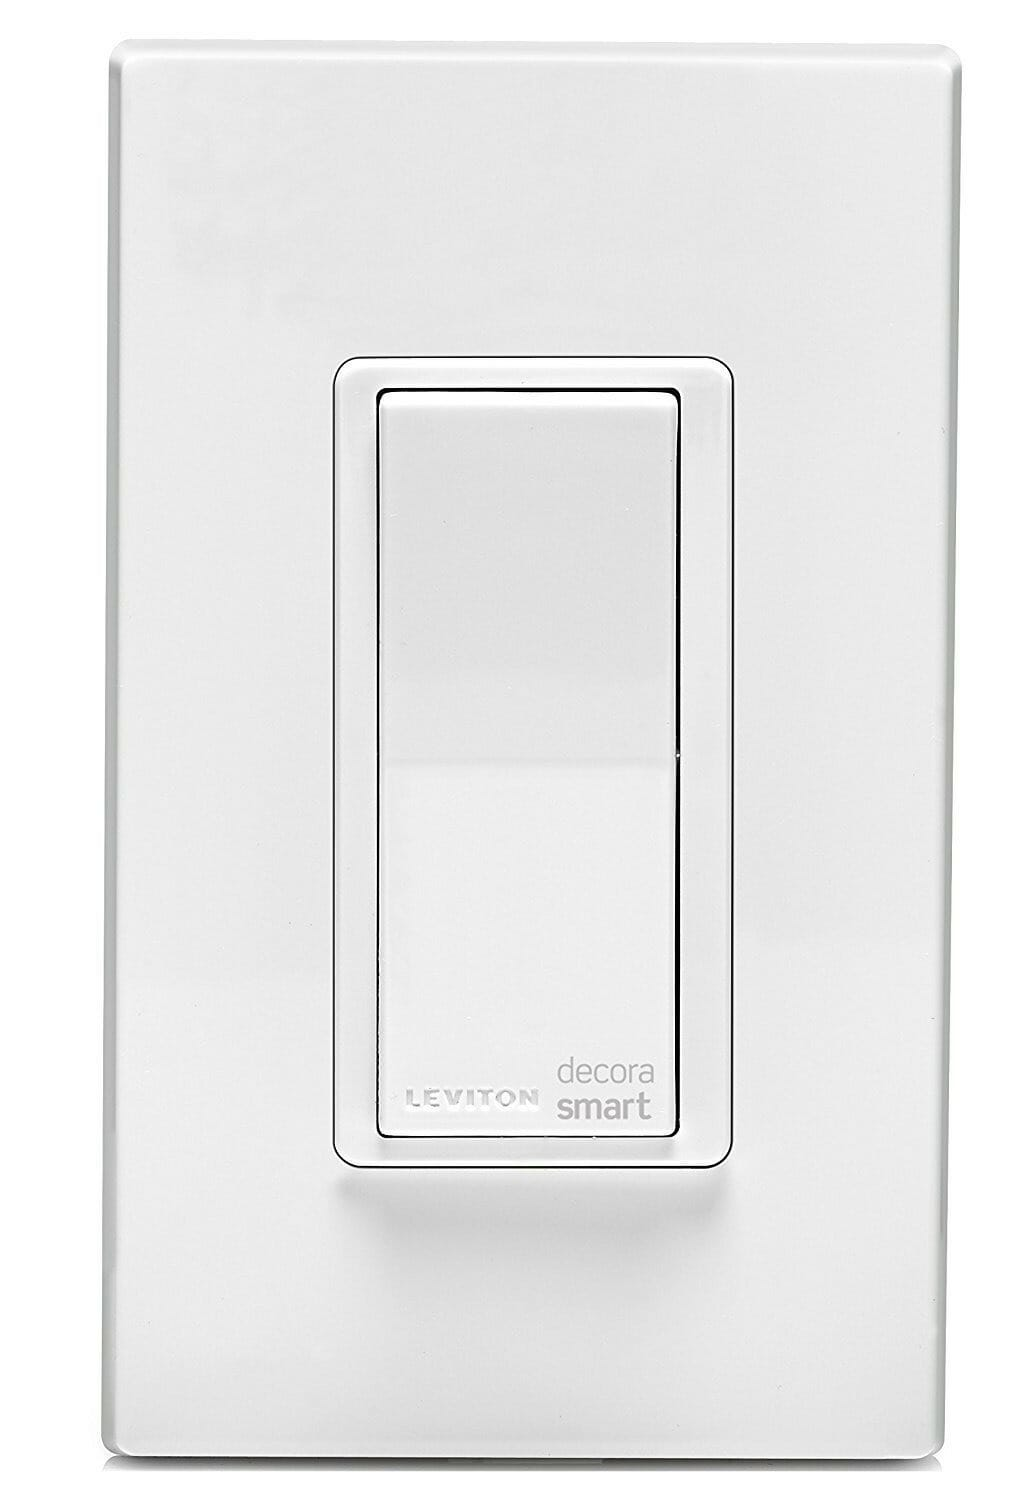 Decora Homekit Light Switches And Dimmers Review